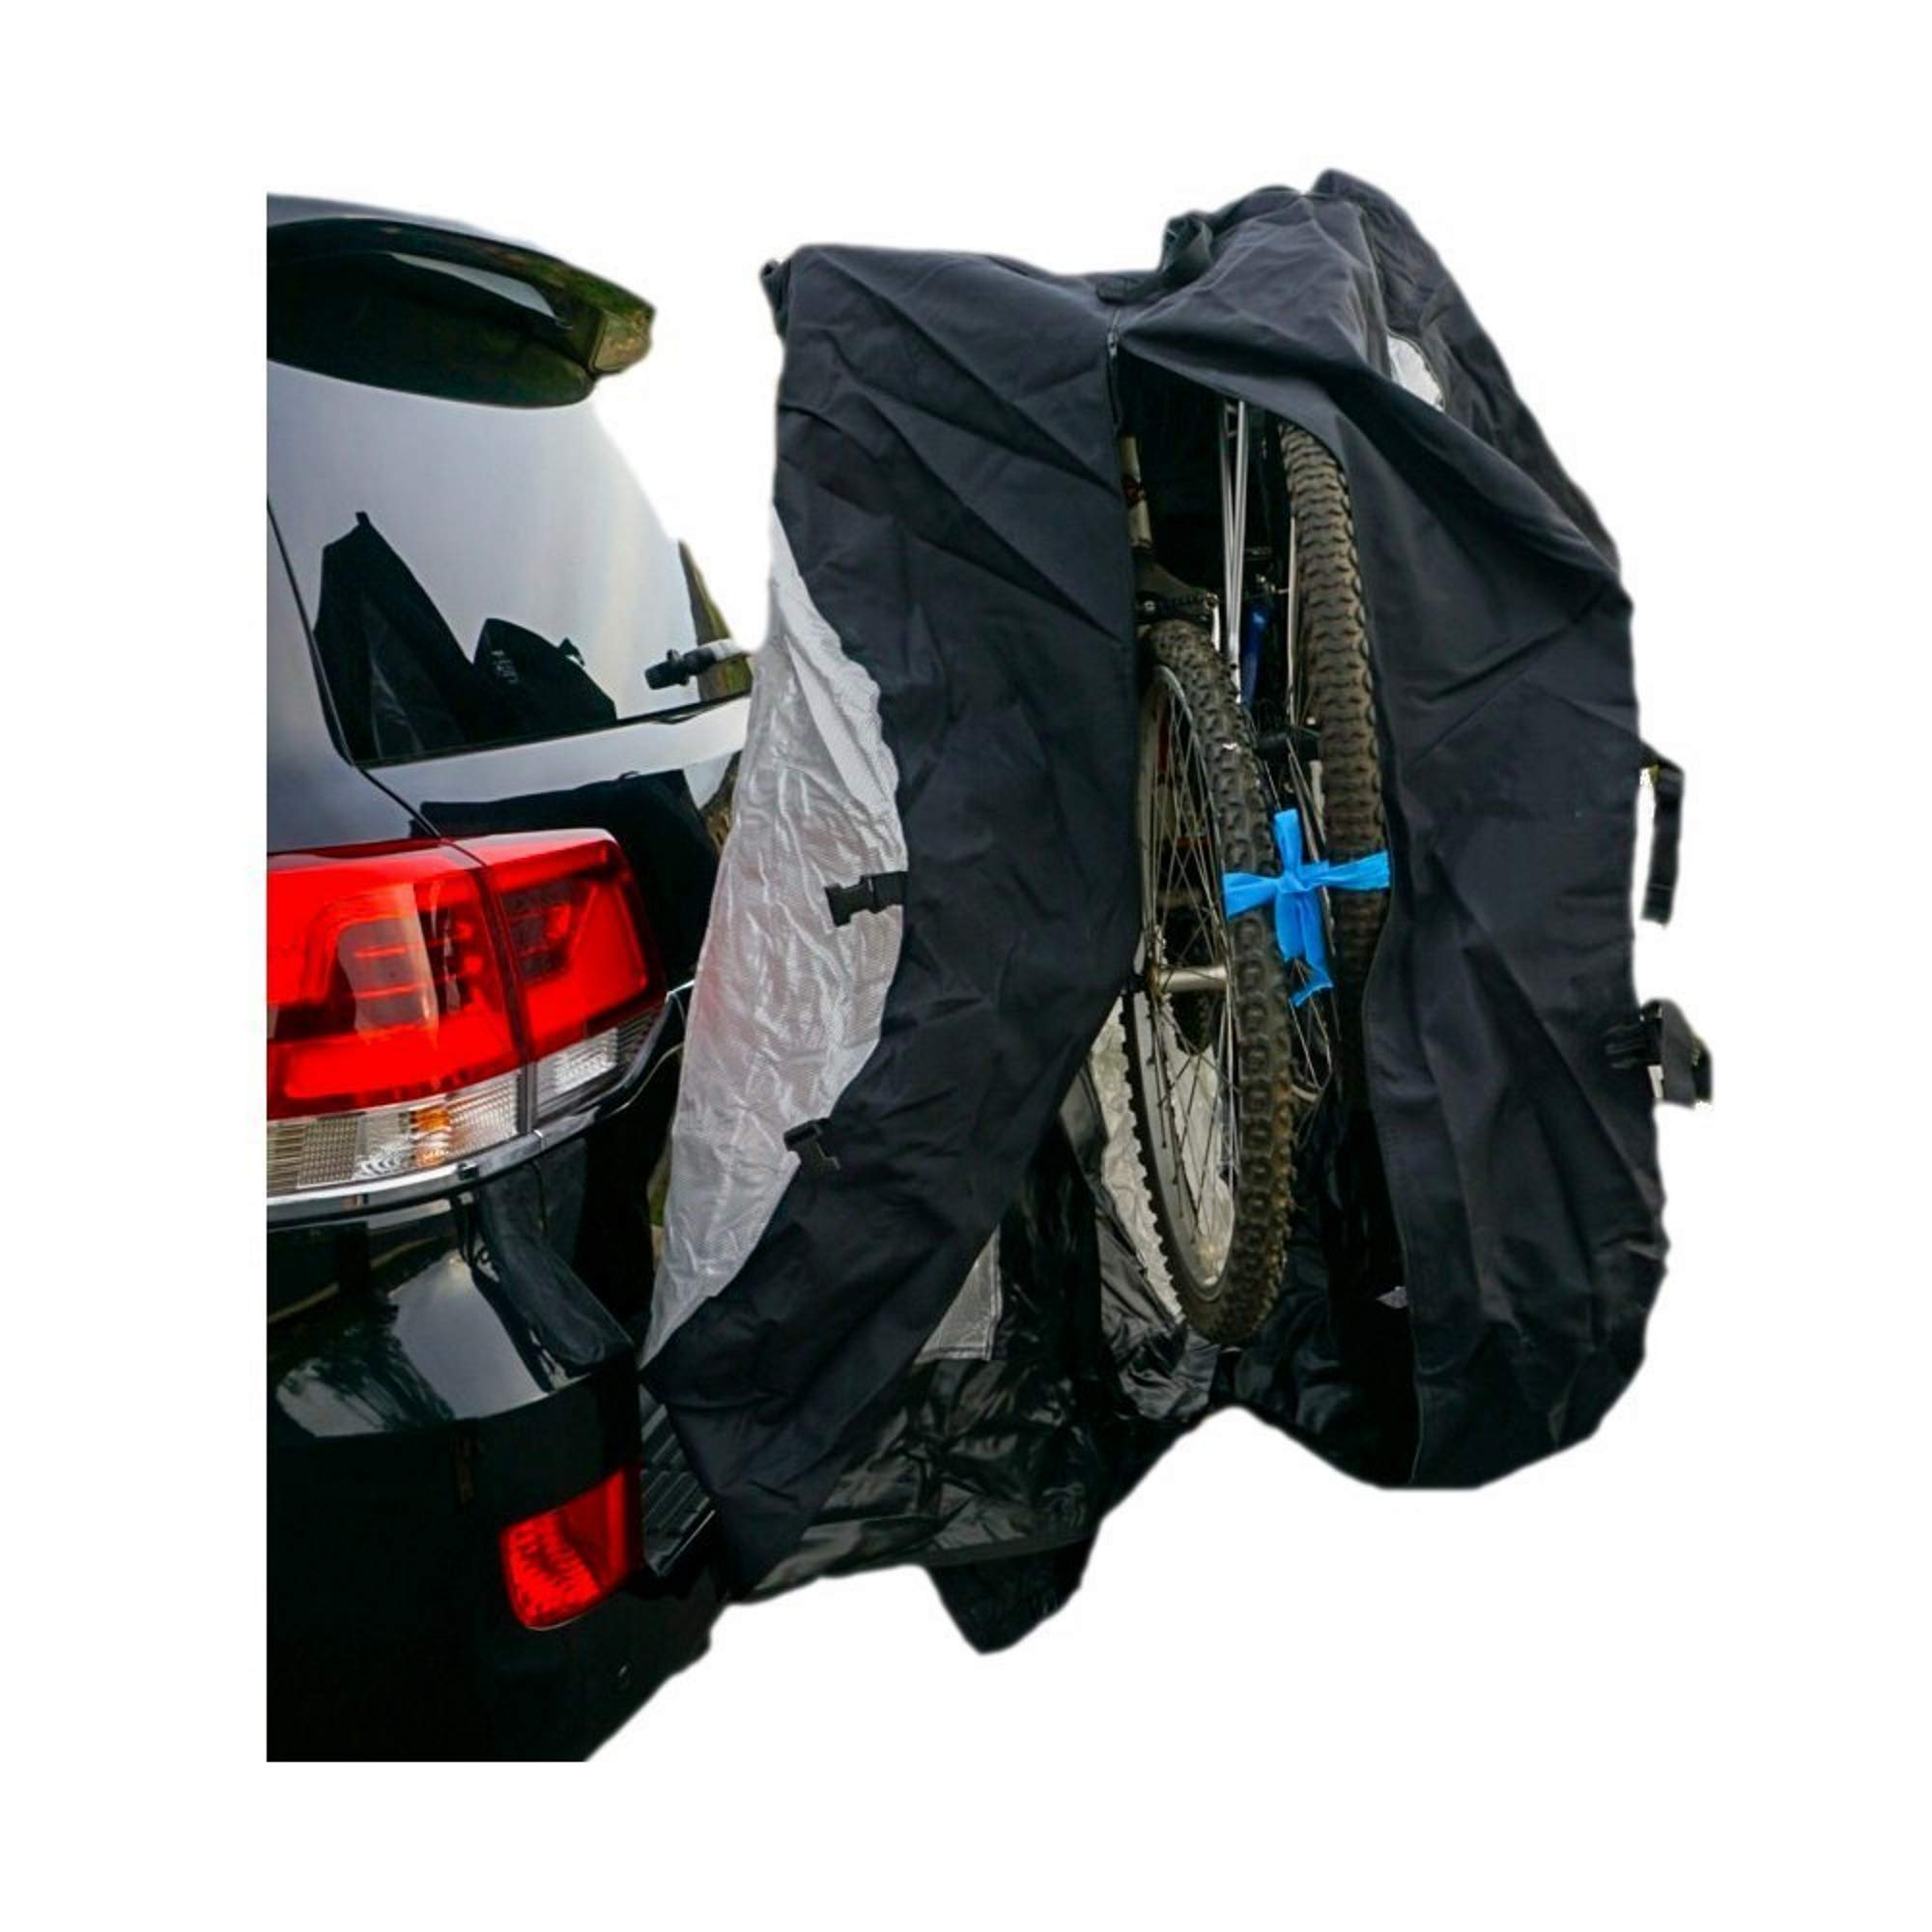 Formosa Covers Bike Cover for Car, Truck, RV, SUV Transport on Rack - Protection While You Roadtrip or Perfect for Home Storage, Reflectors (Dual (2 Bikes)) by Formosa Covers